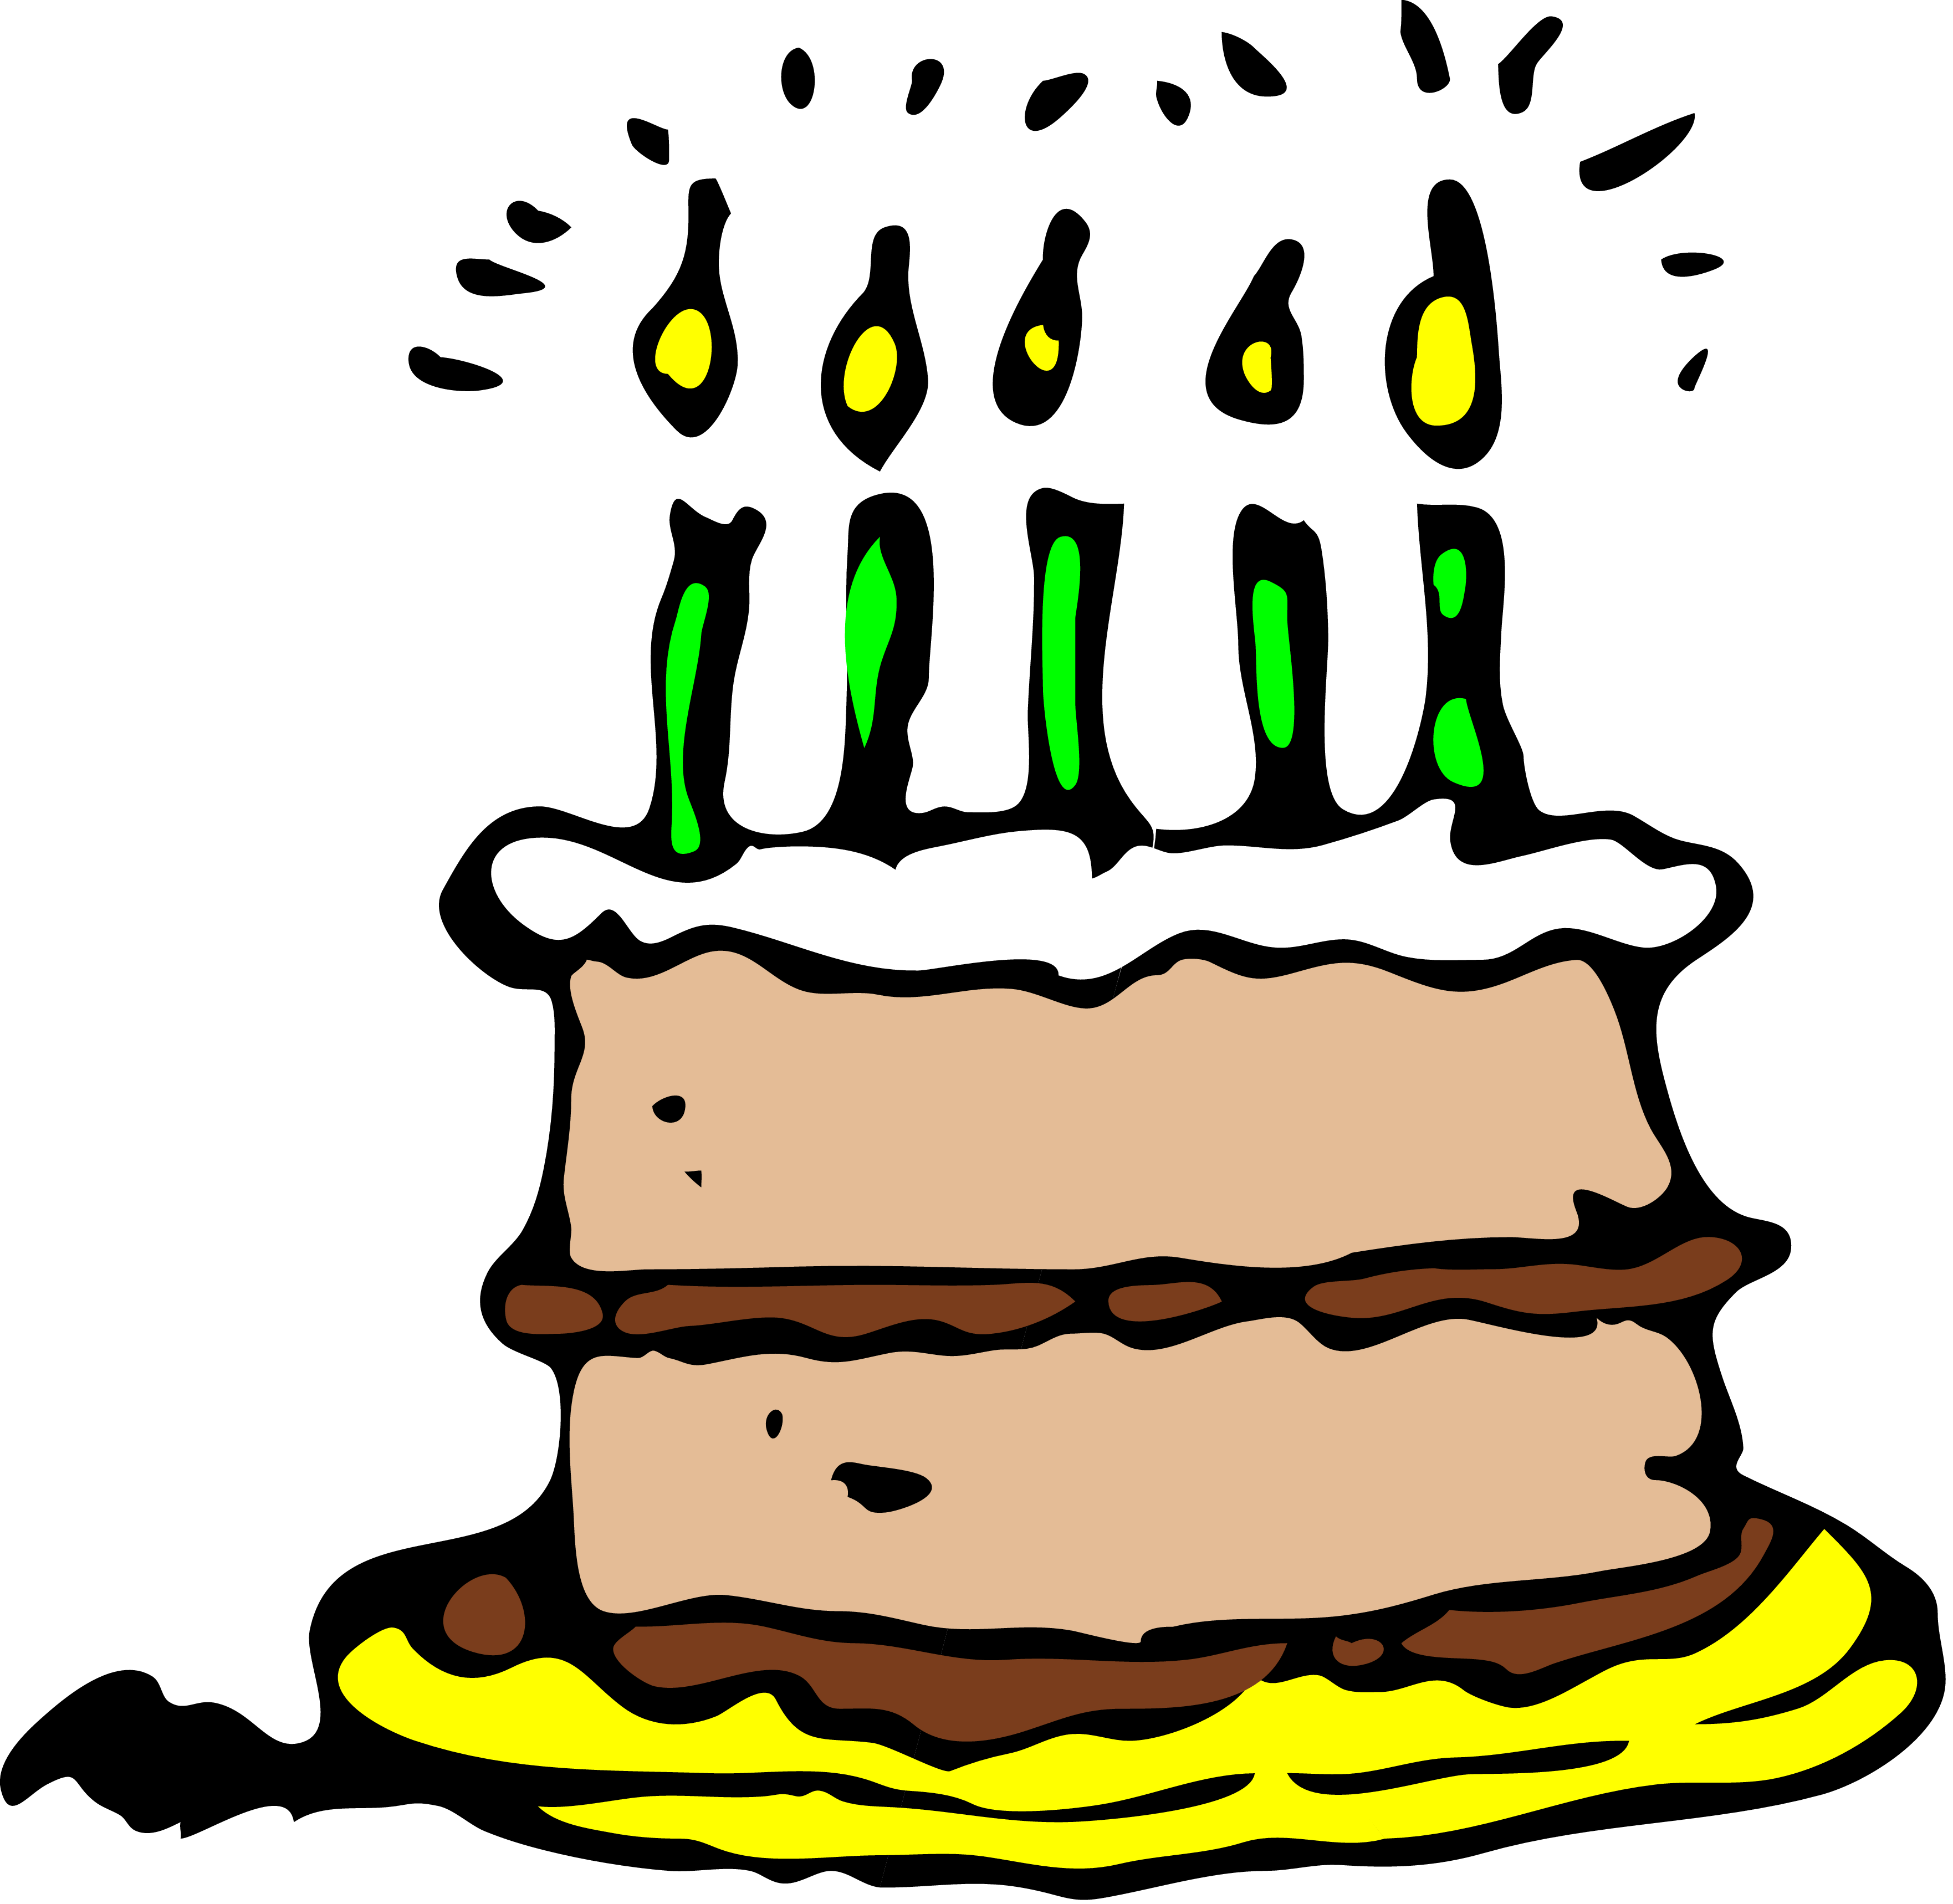 Warhammer clipart happy birthday Funny For happy Collection Birthday